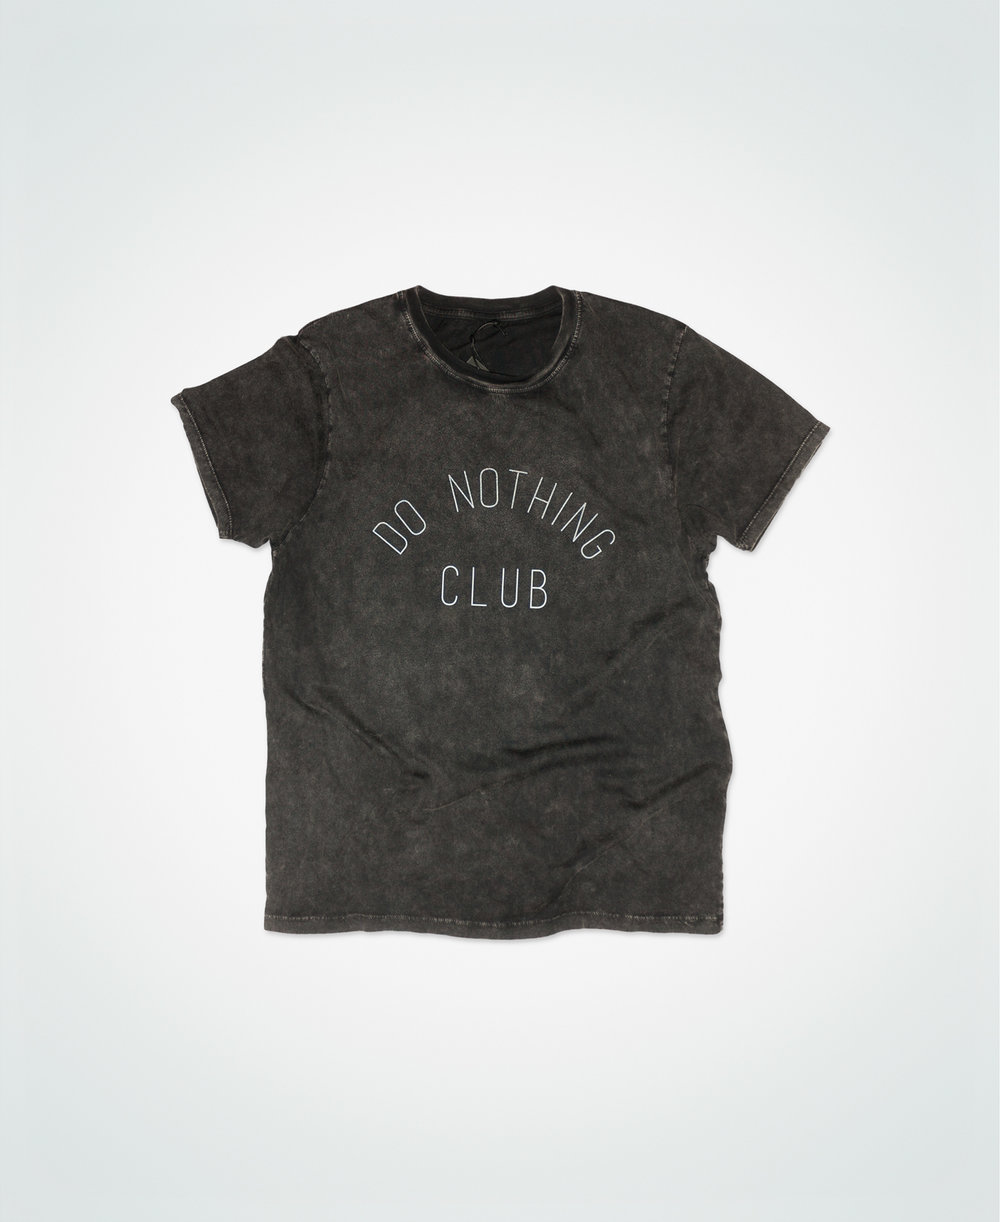 do-nothing-club-acid-black.jpg